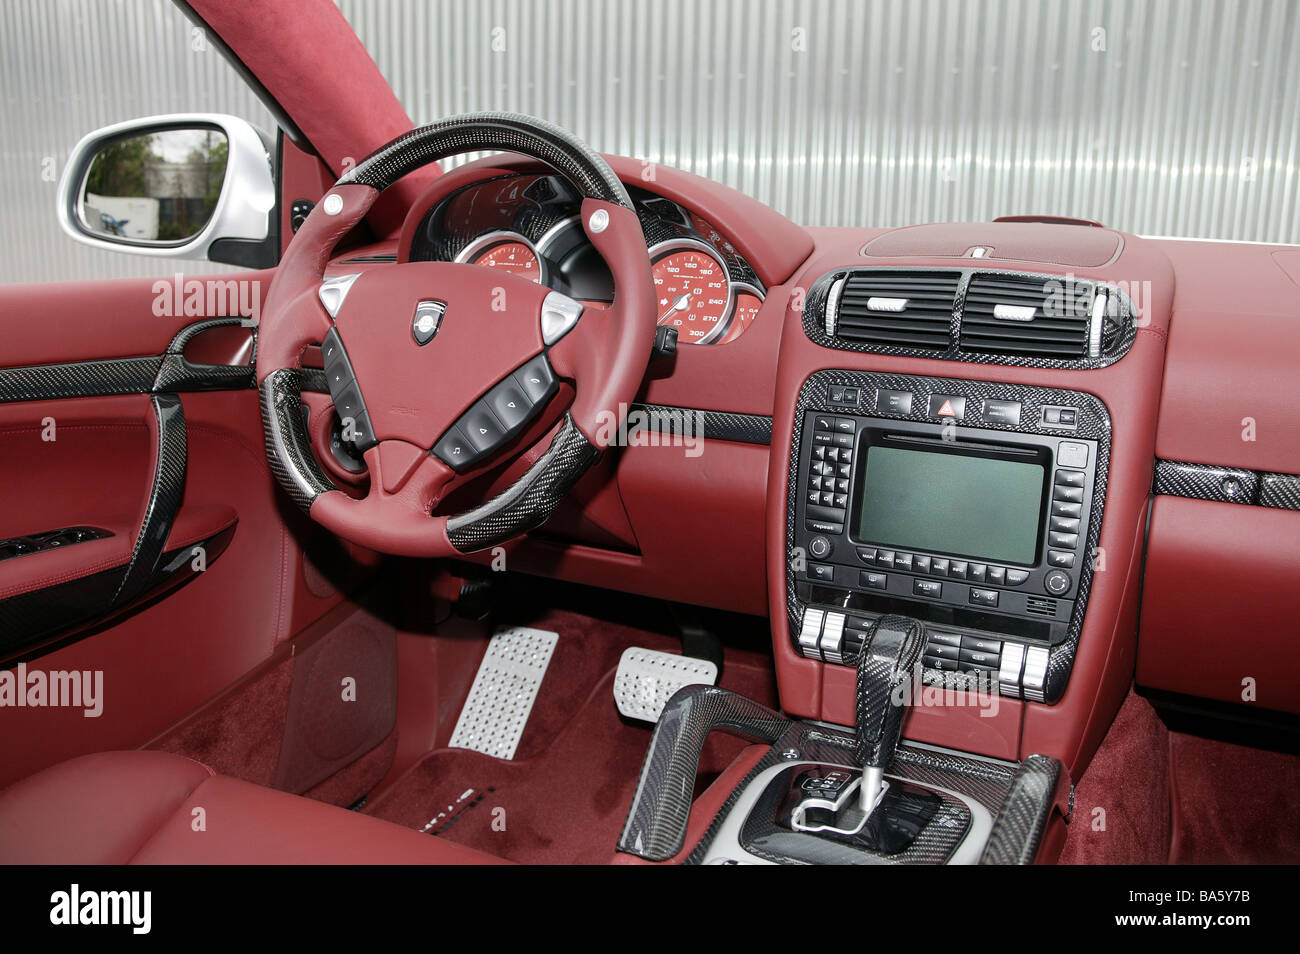 car porsche gemballa cayenne cockpit dashboard no property. Black Bedroom Furniture Sets. Home Design Ideas